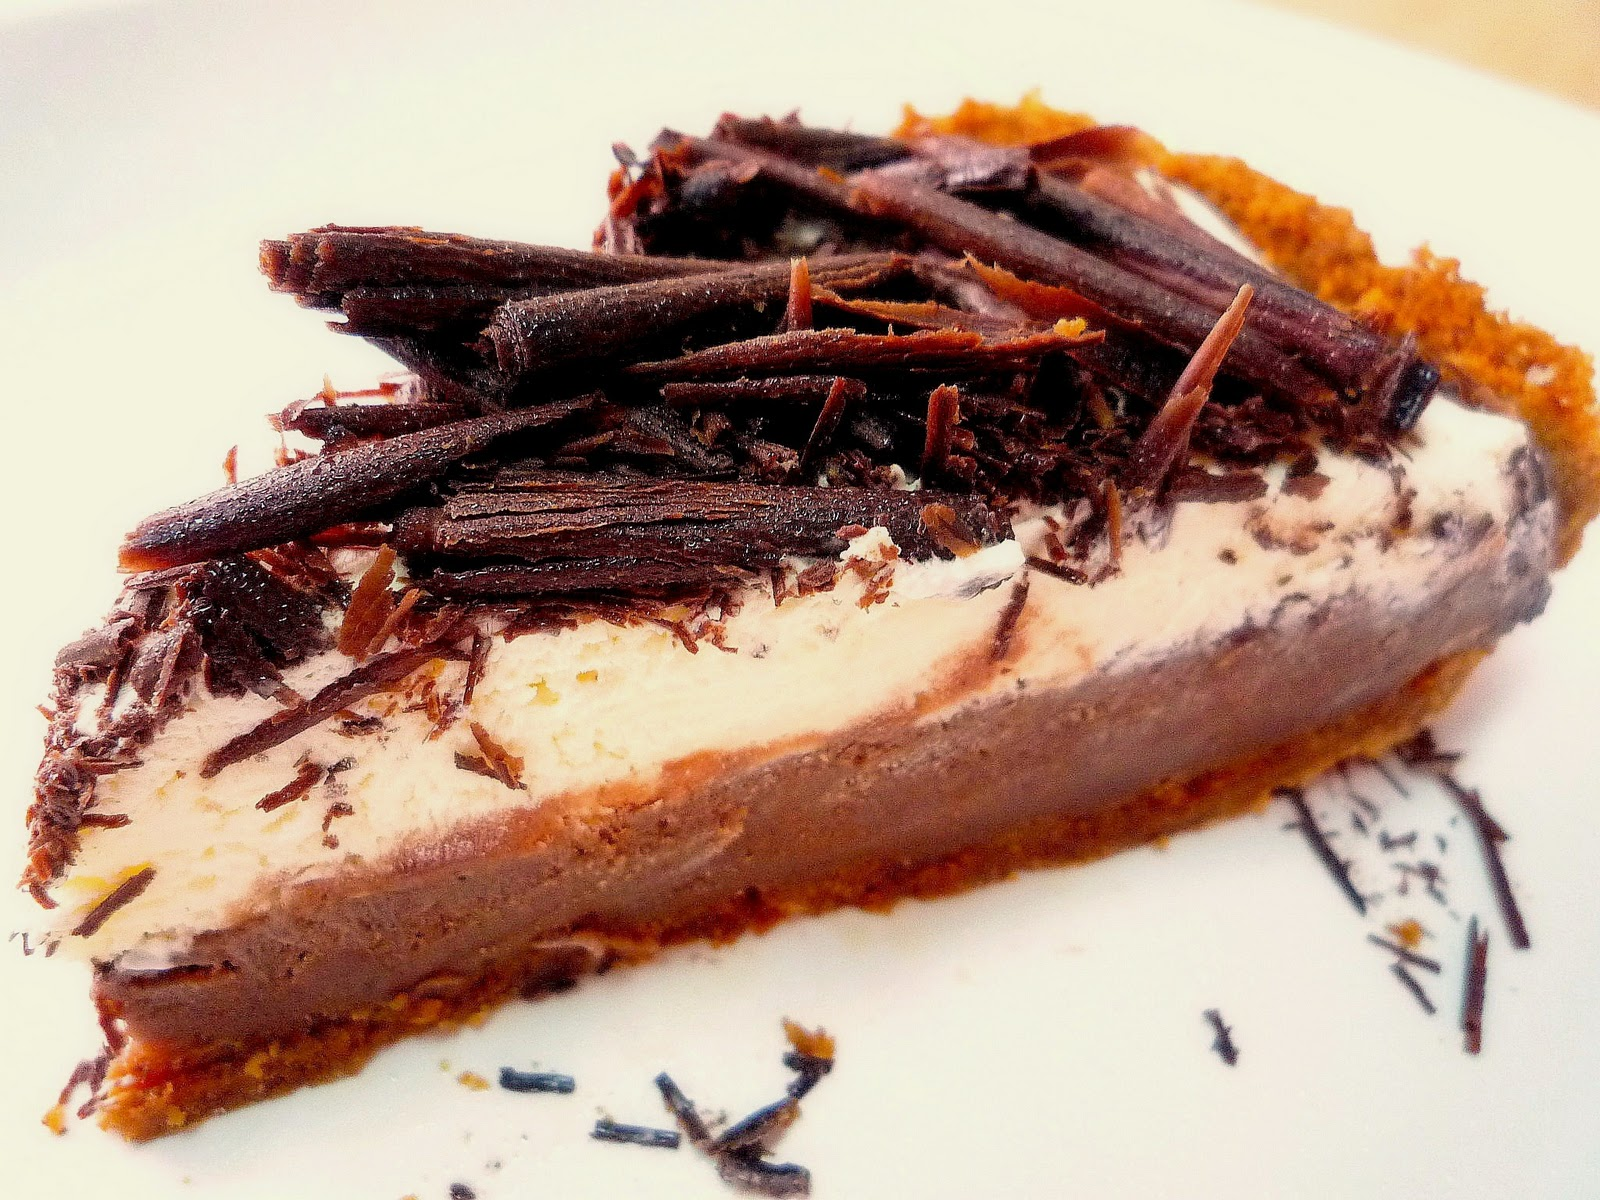 Food Wanderings : Chocolate Pudding Pie